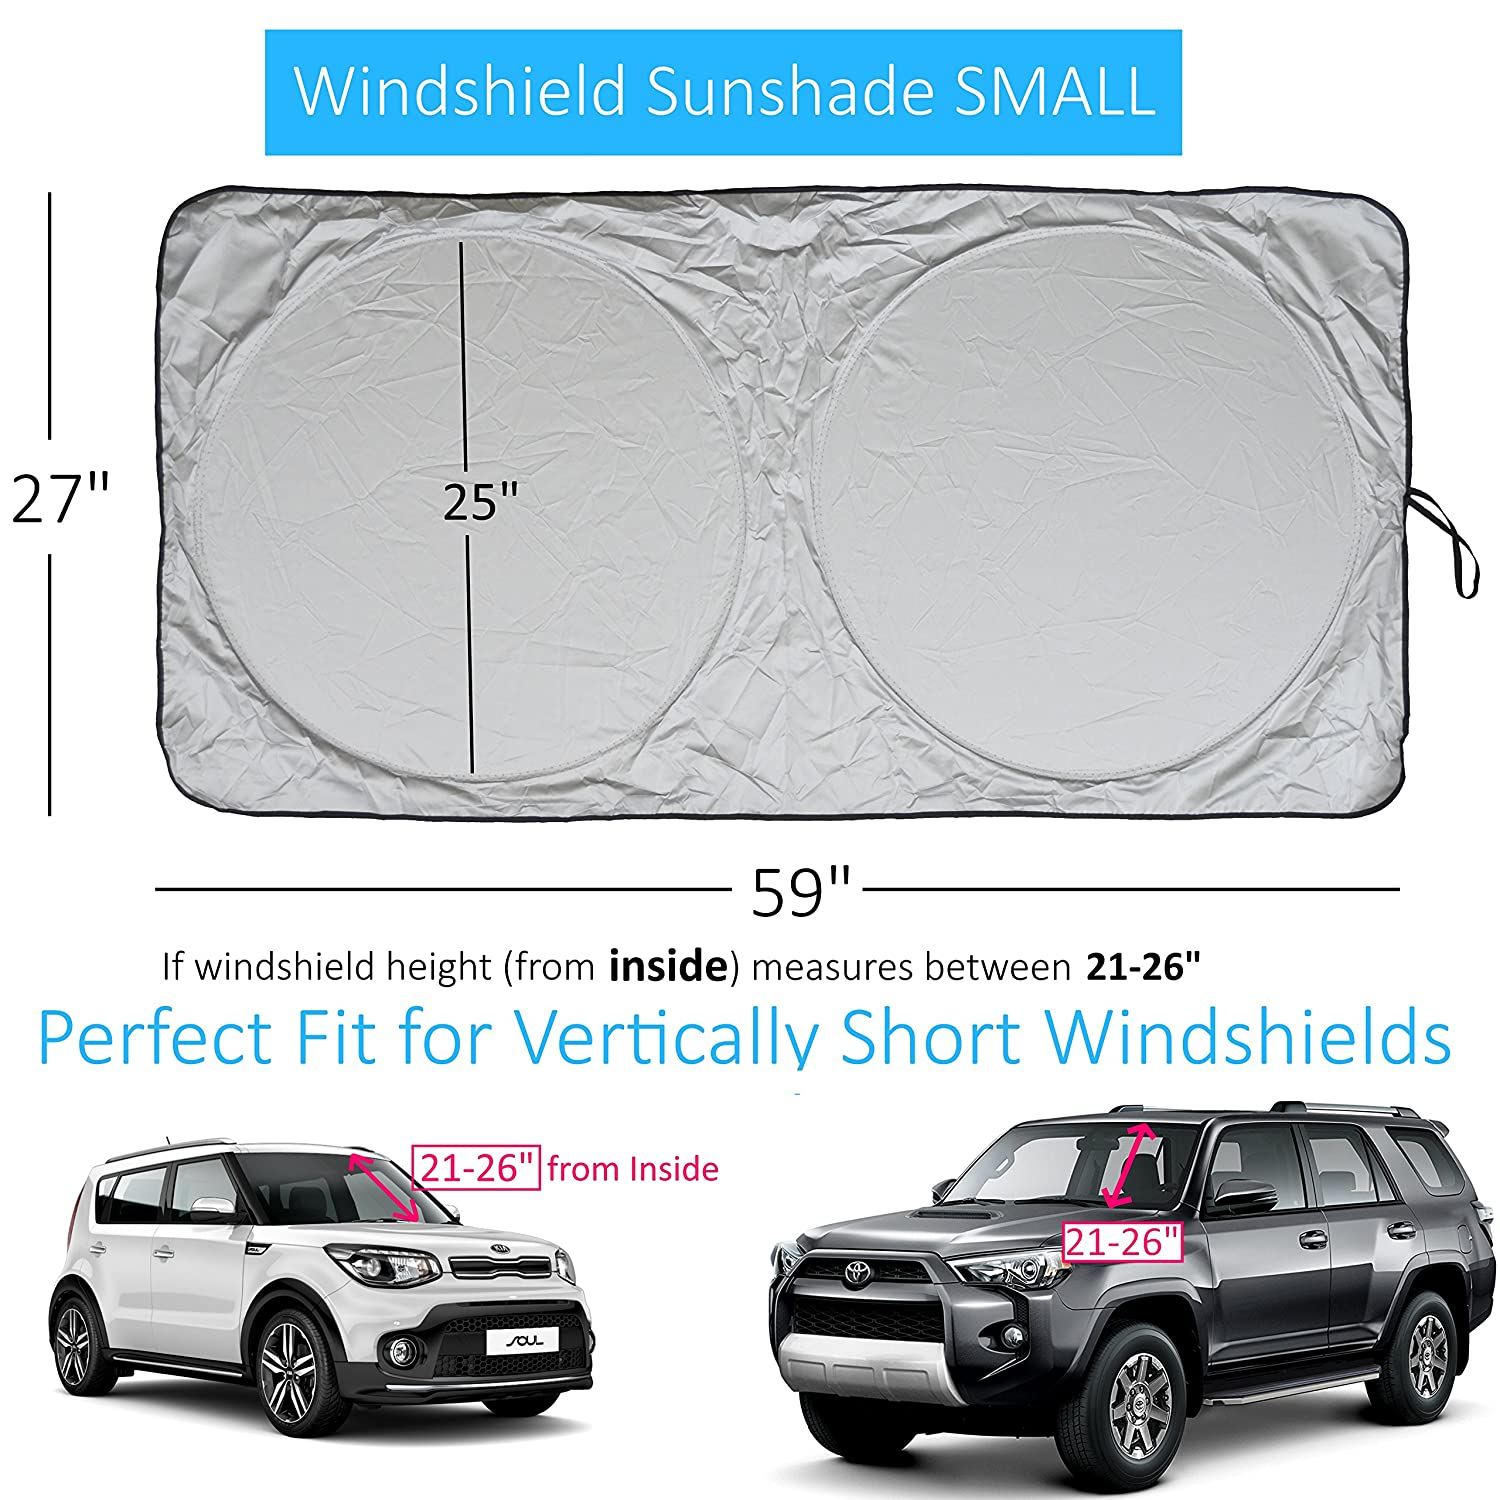 S10 Windshield Dimensions Sun Visor 1991 Chevy Wiring Diagram Shade Easy Read Size Chart For Car Suv 1500x1500